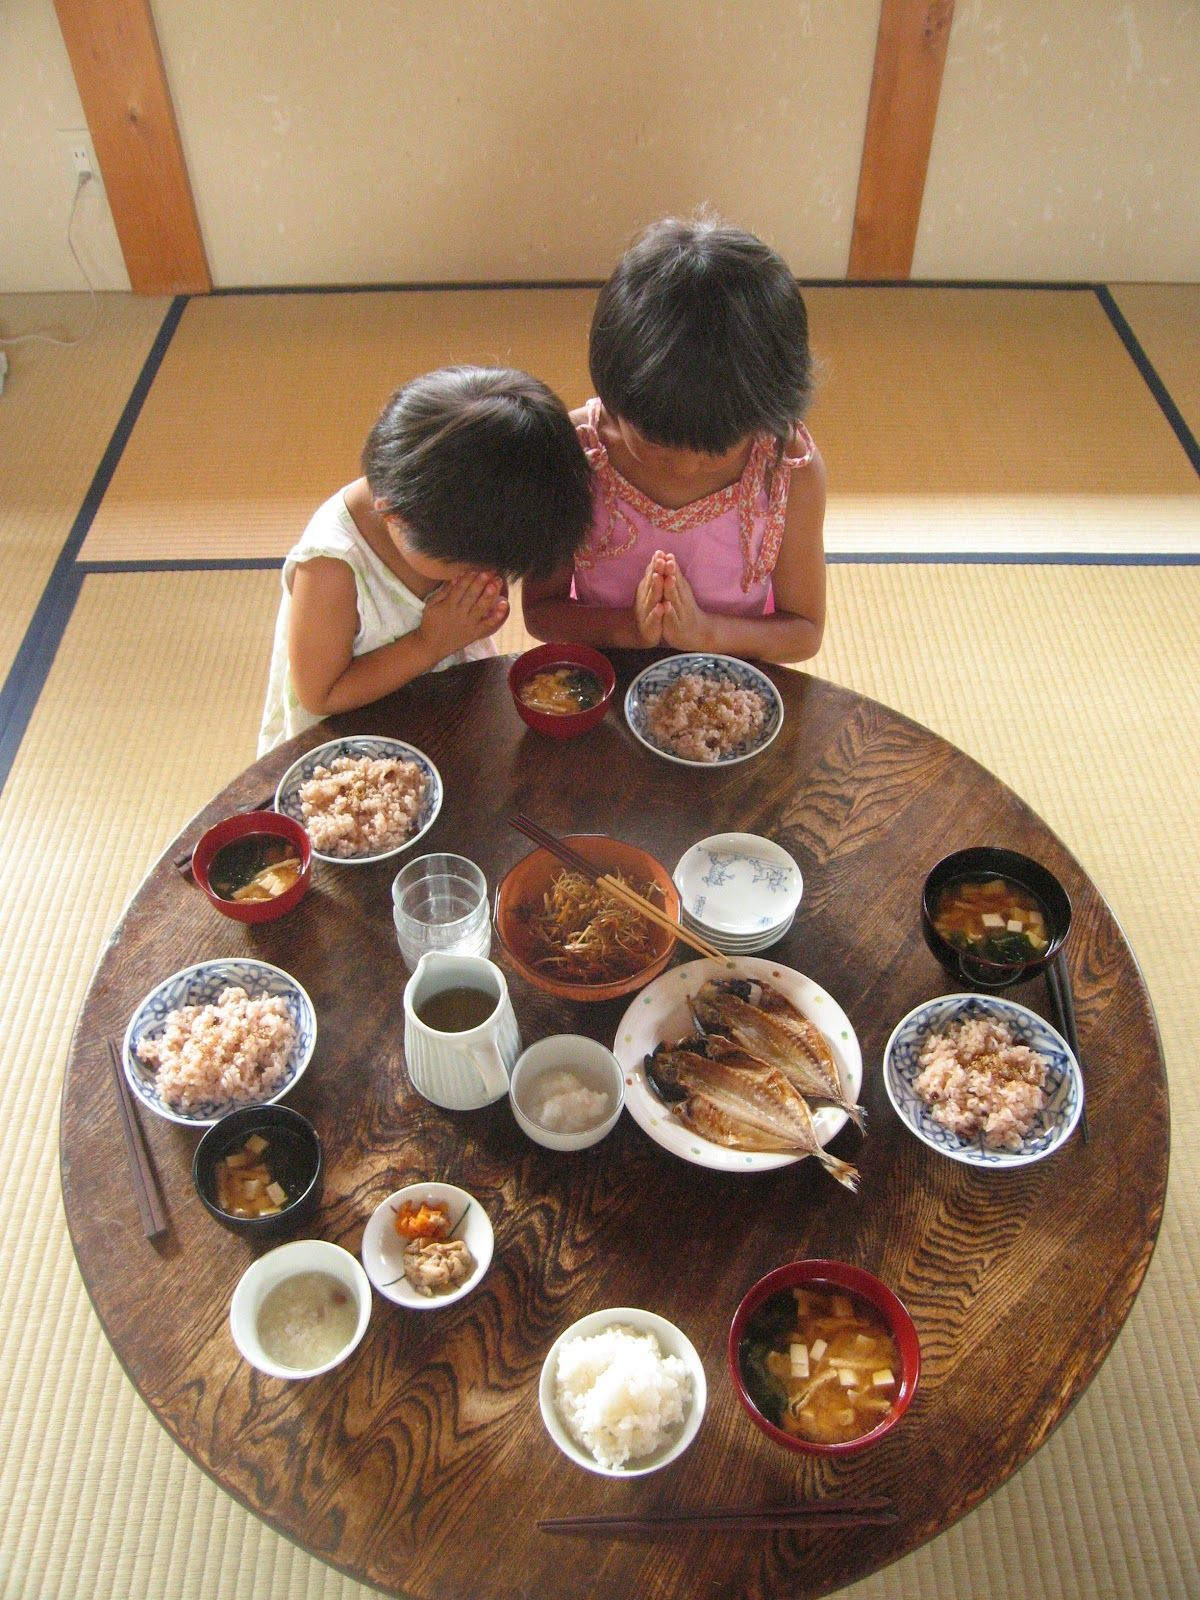 Traditional Japanese Meals on Chabudai Low Dining Table in a